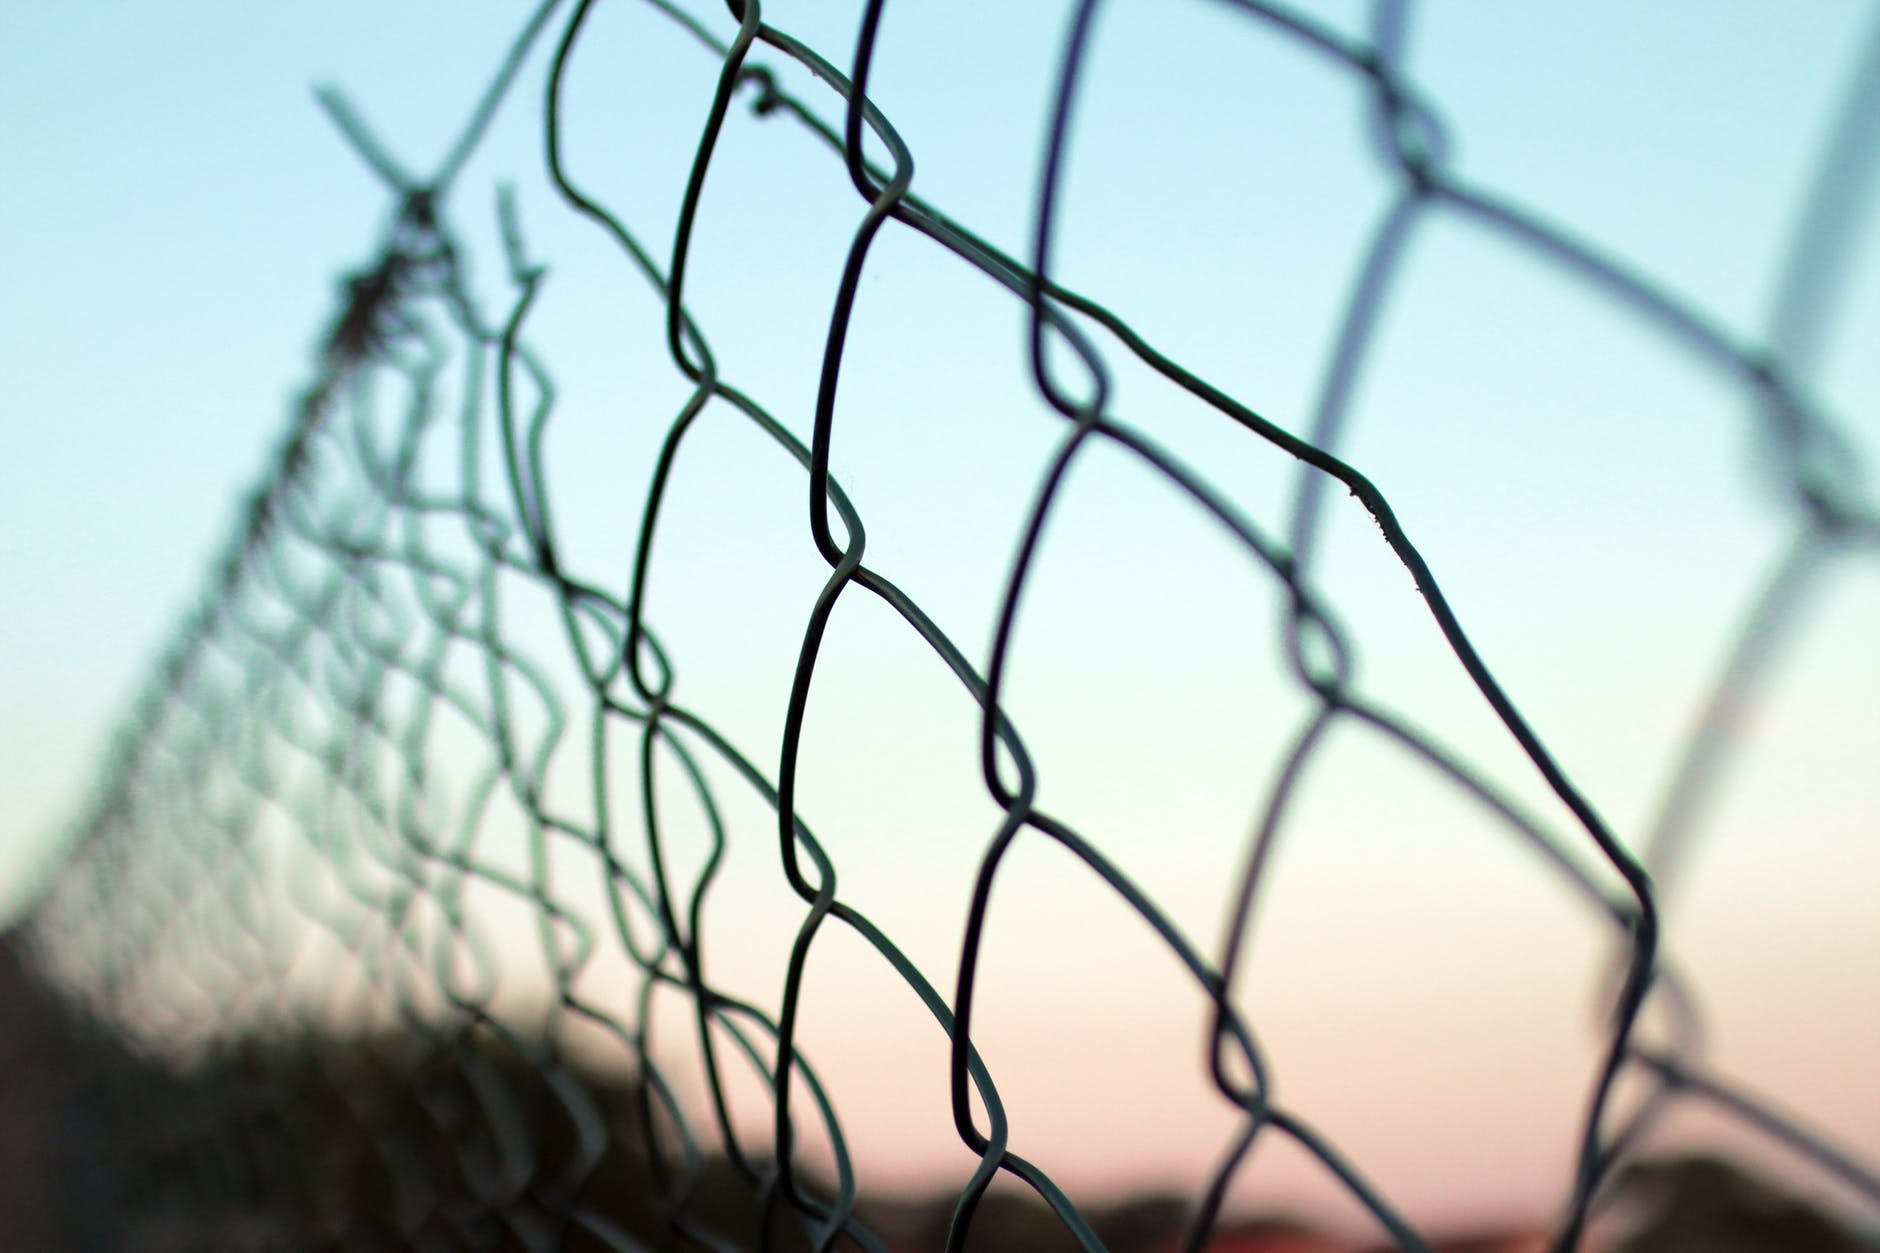 fence obstacle wire mesh wire netting